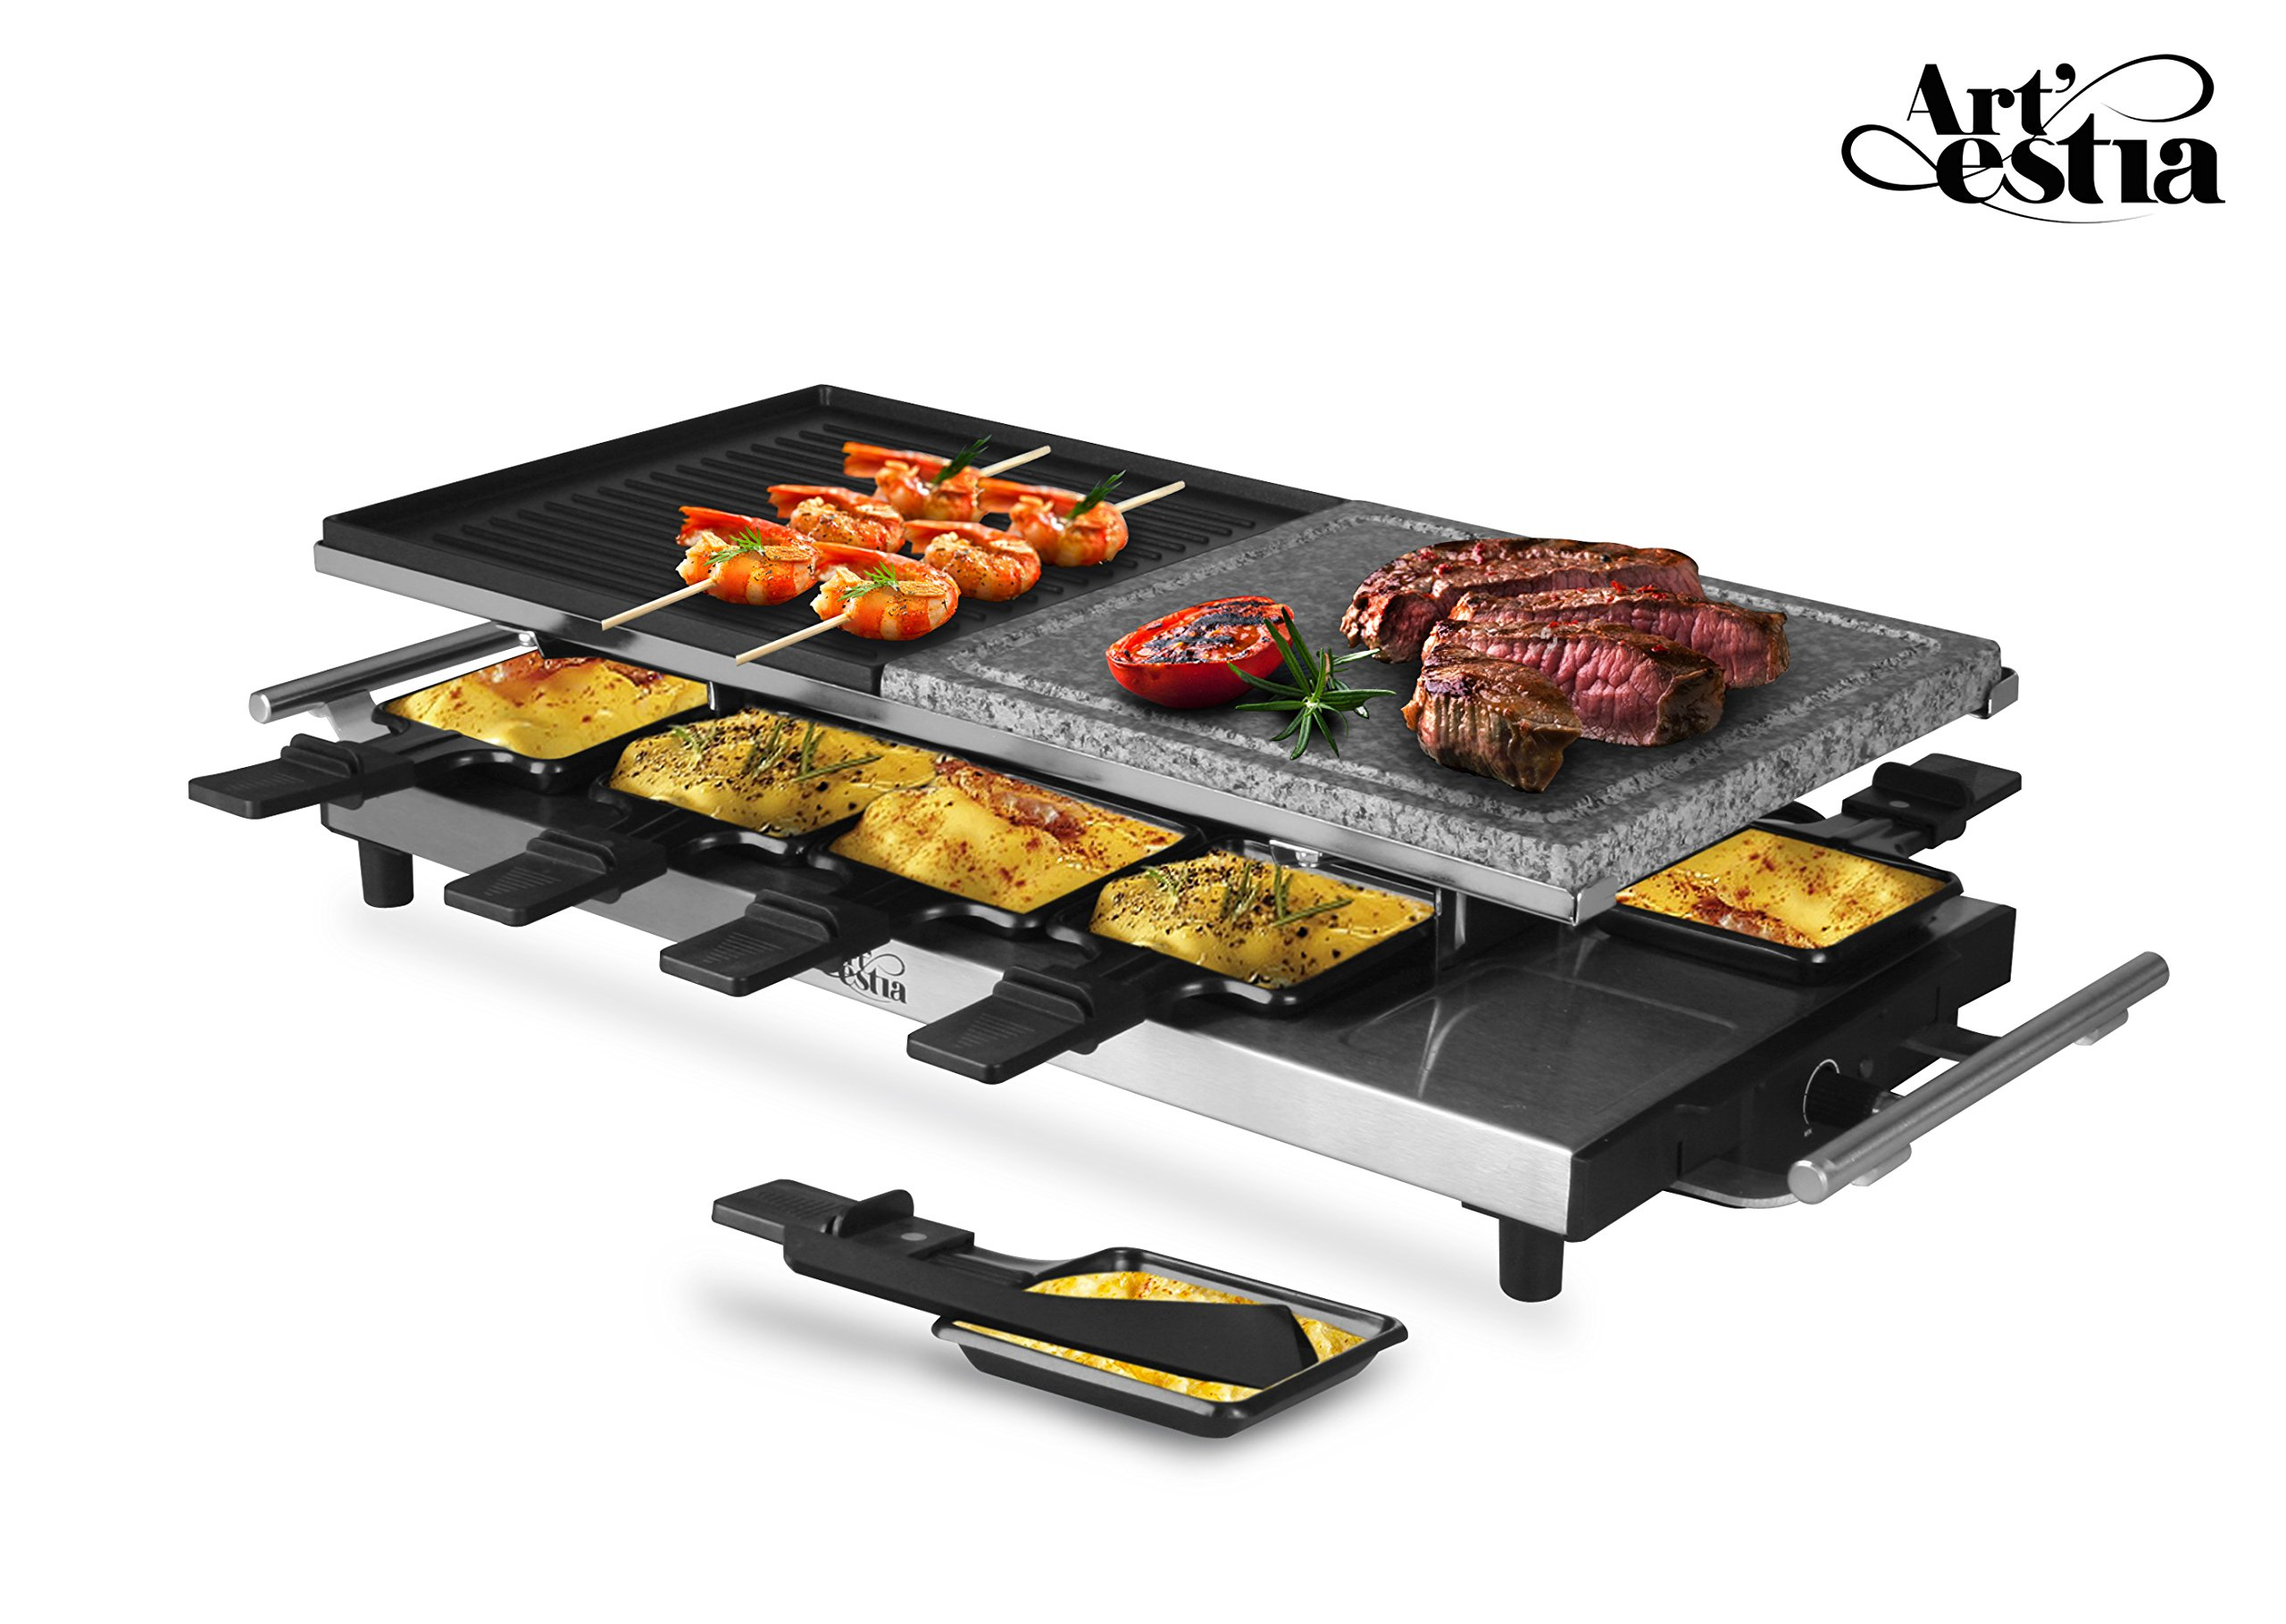 Artestia 10 Person Large Stainless Steel Electric Raclette Grill with Two Half Size Plates, High Power 1500W (Stainless Steel Half Stone/Half Aluminum for 10 persons)